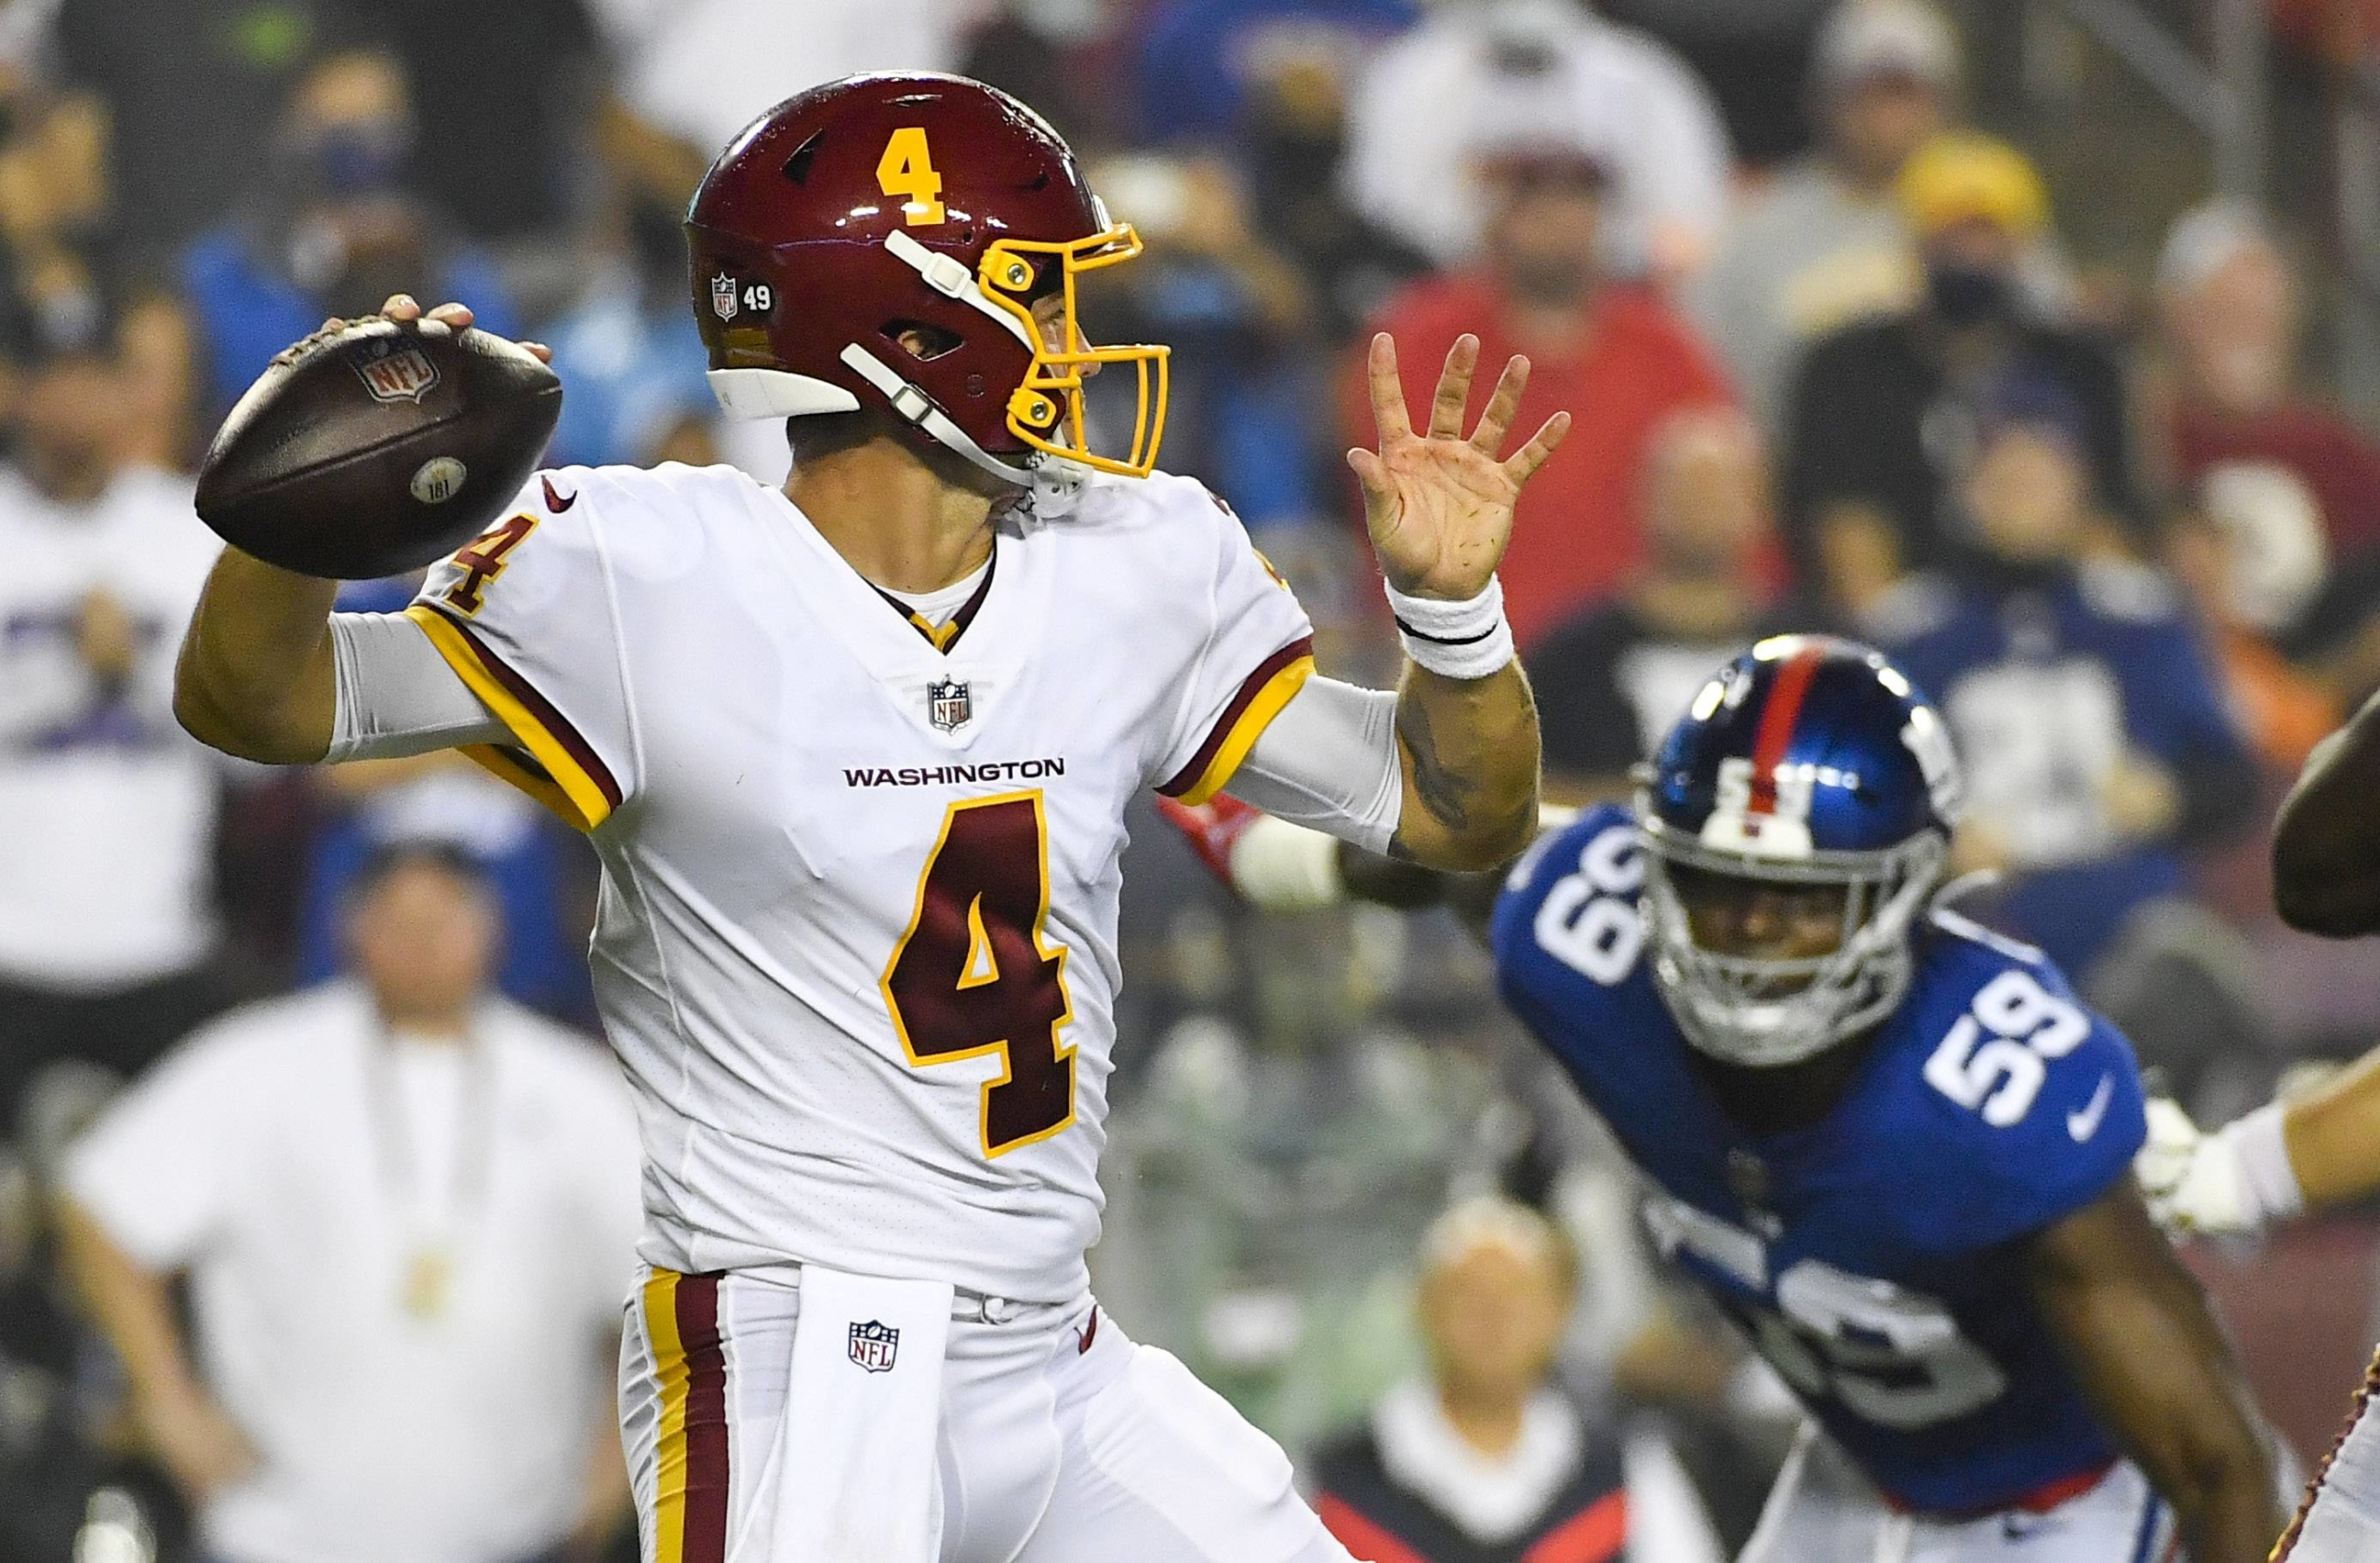 Washington Football Team quarterback Taylor Heinicke drops back to pass against the Giants during the first quarter of their game in Landover, Maryland, on Thursday. | USA TODAY / VIA REUTERS